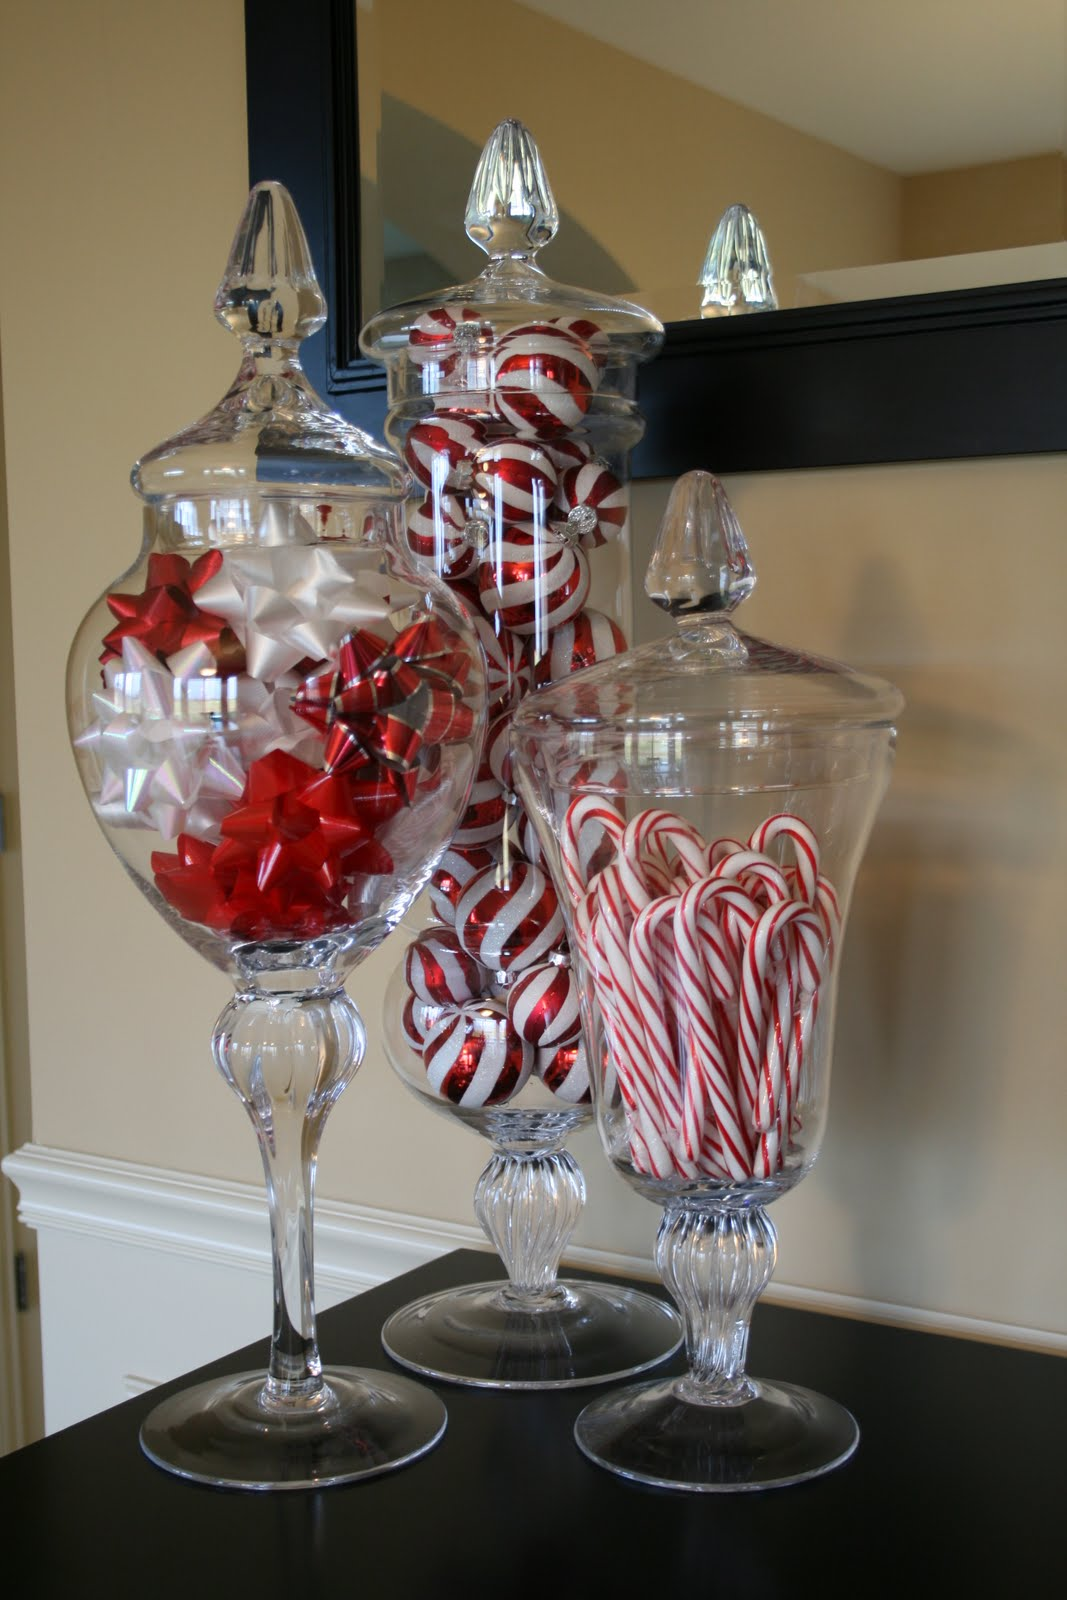 My creative way decorating with glass apothecary jars for Cheap holiday decorations